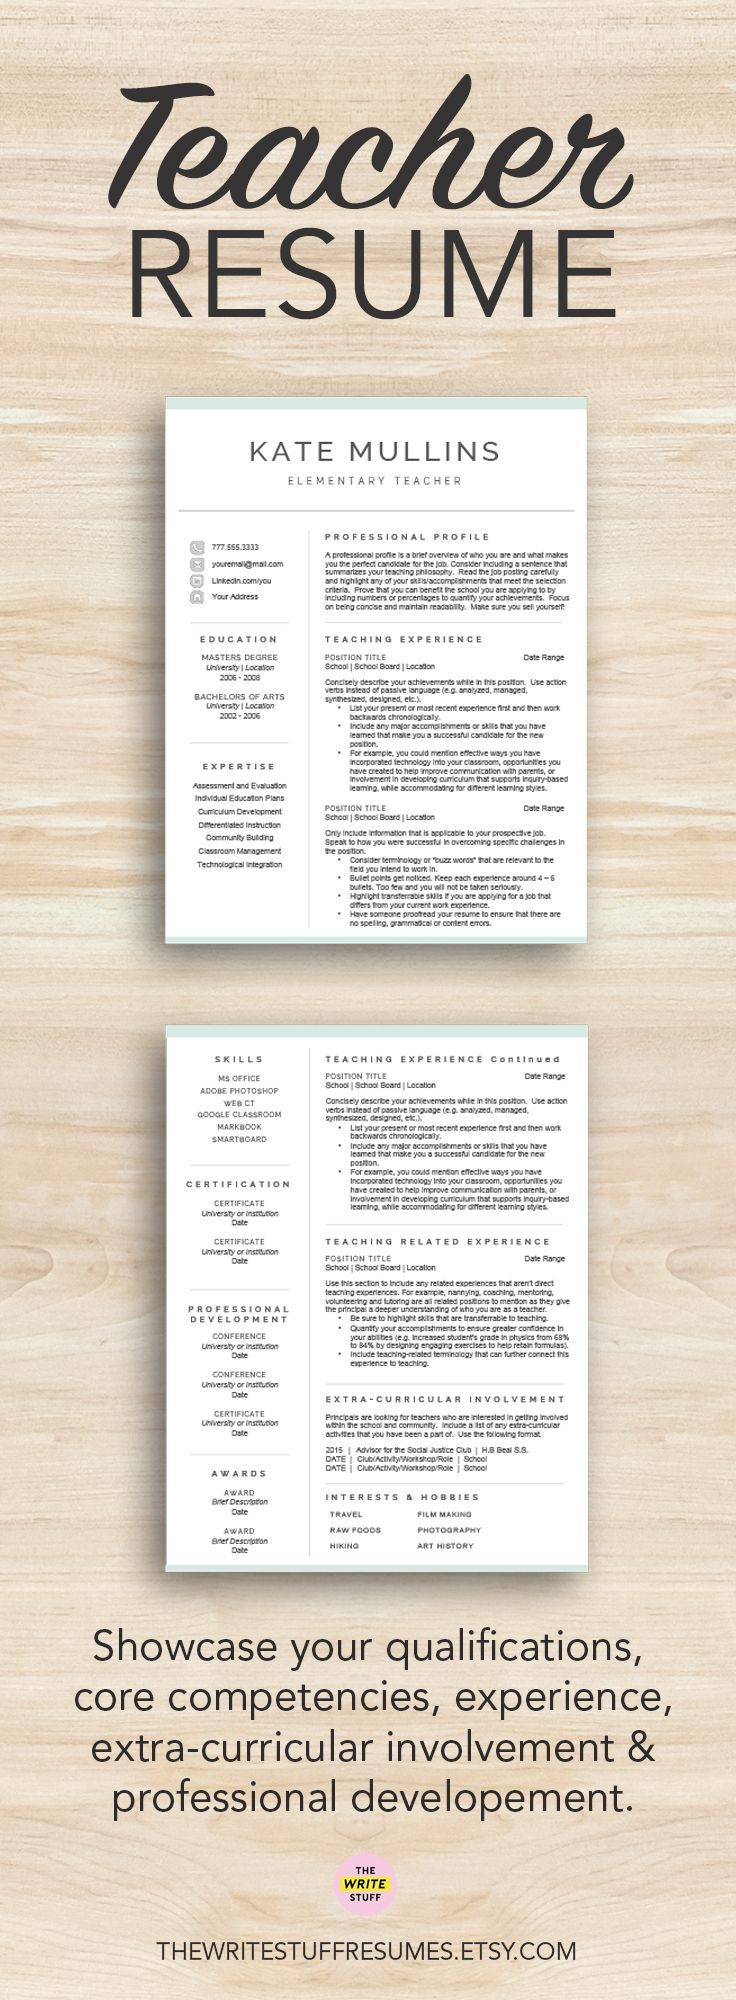 Best Resume Templates Images On   Career Career